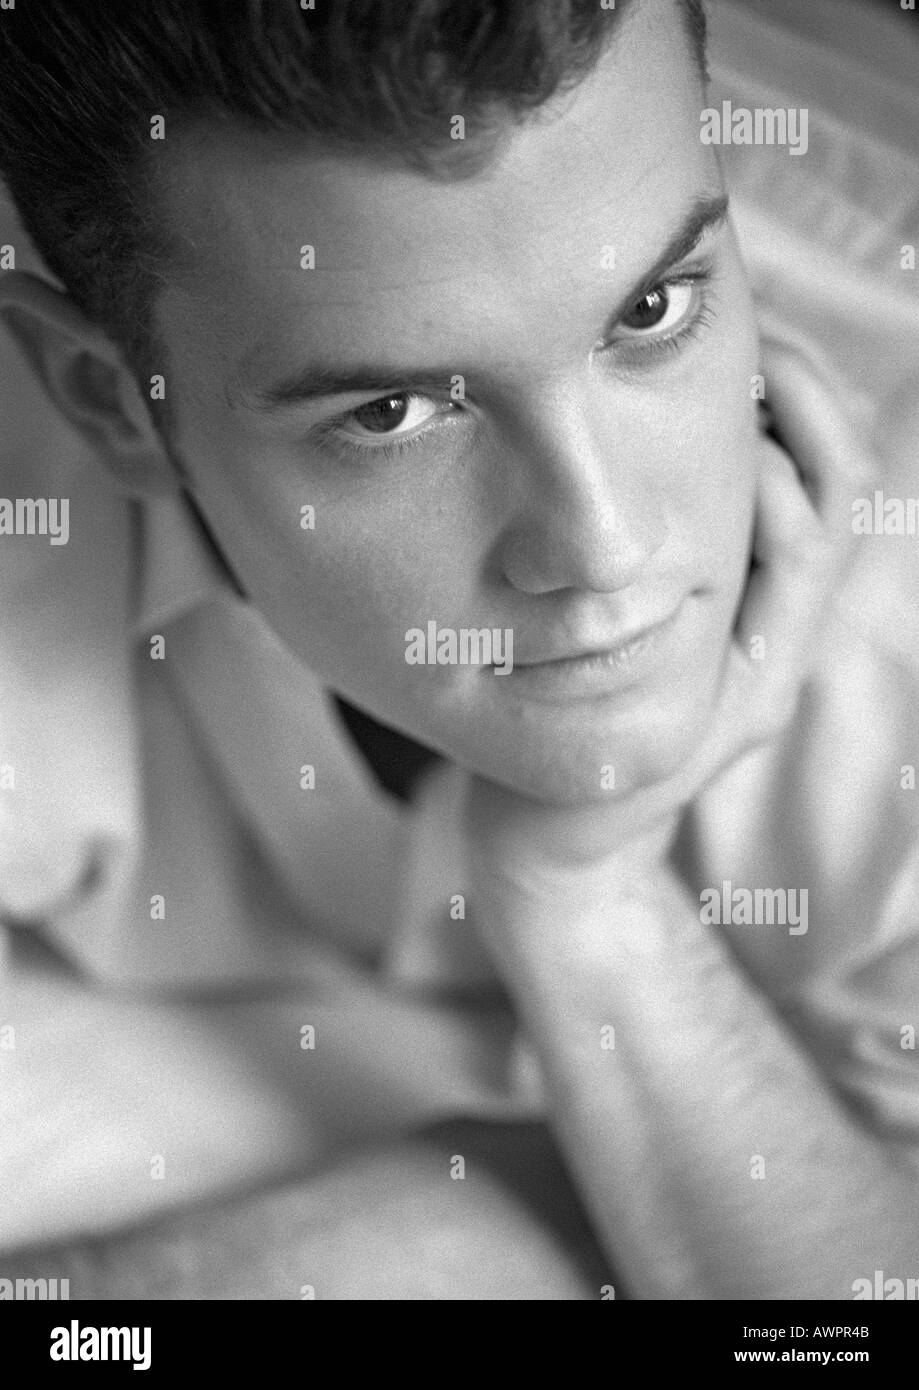 Man leaning on elbow, close-up, b&w - Stock Image